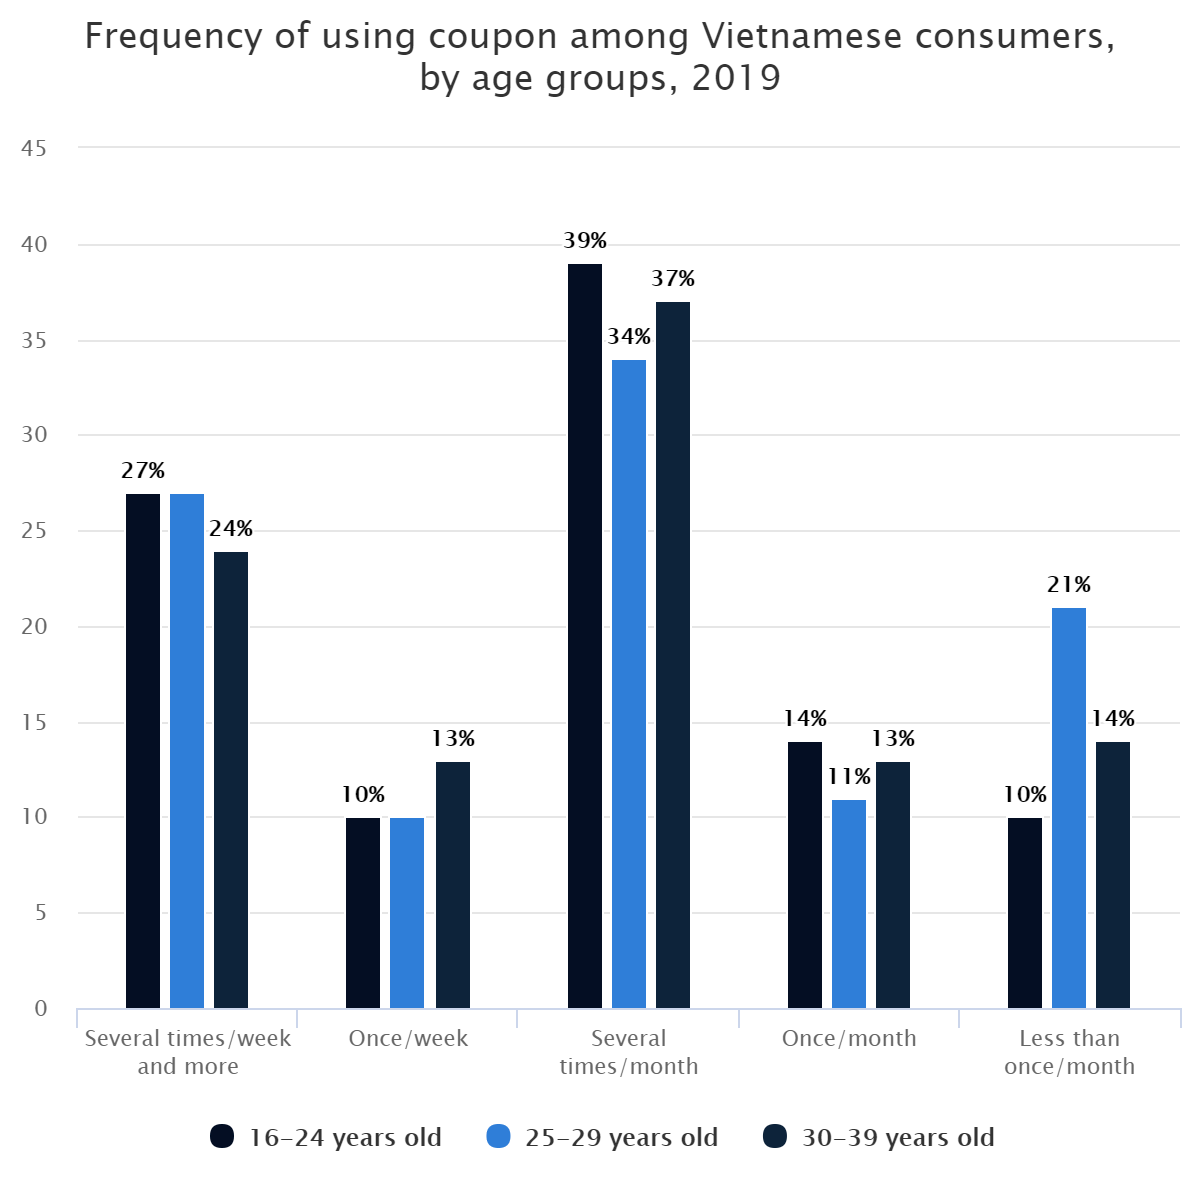 Frequency of using coupon among Vietnamese consumers, by age groups, 2019